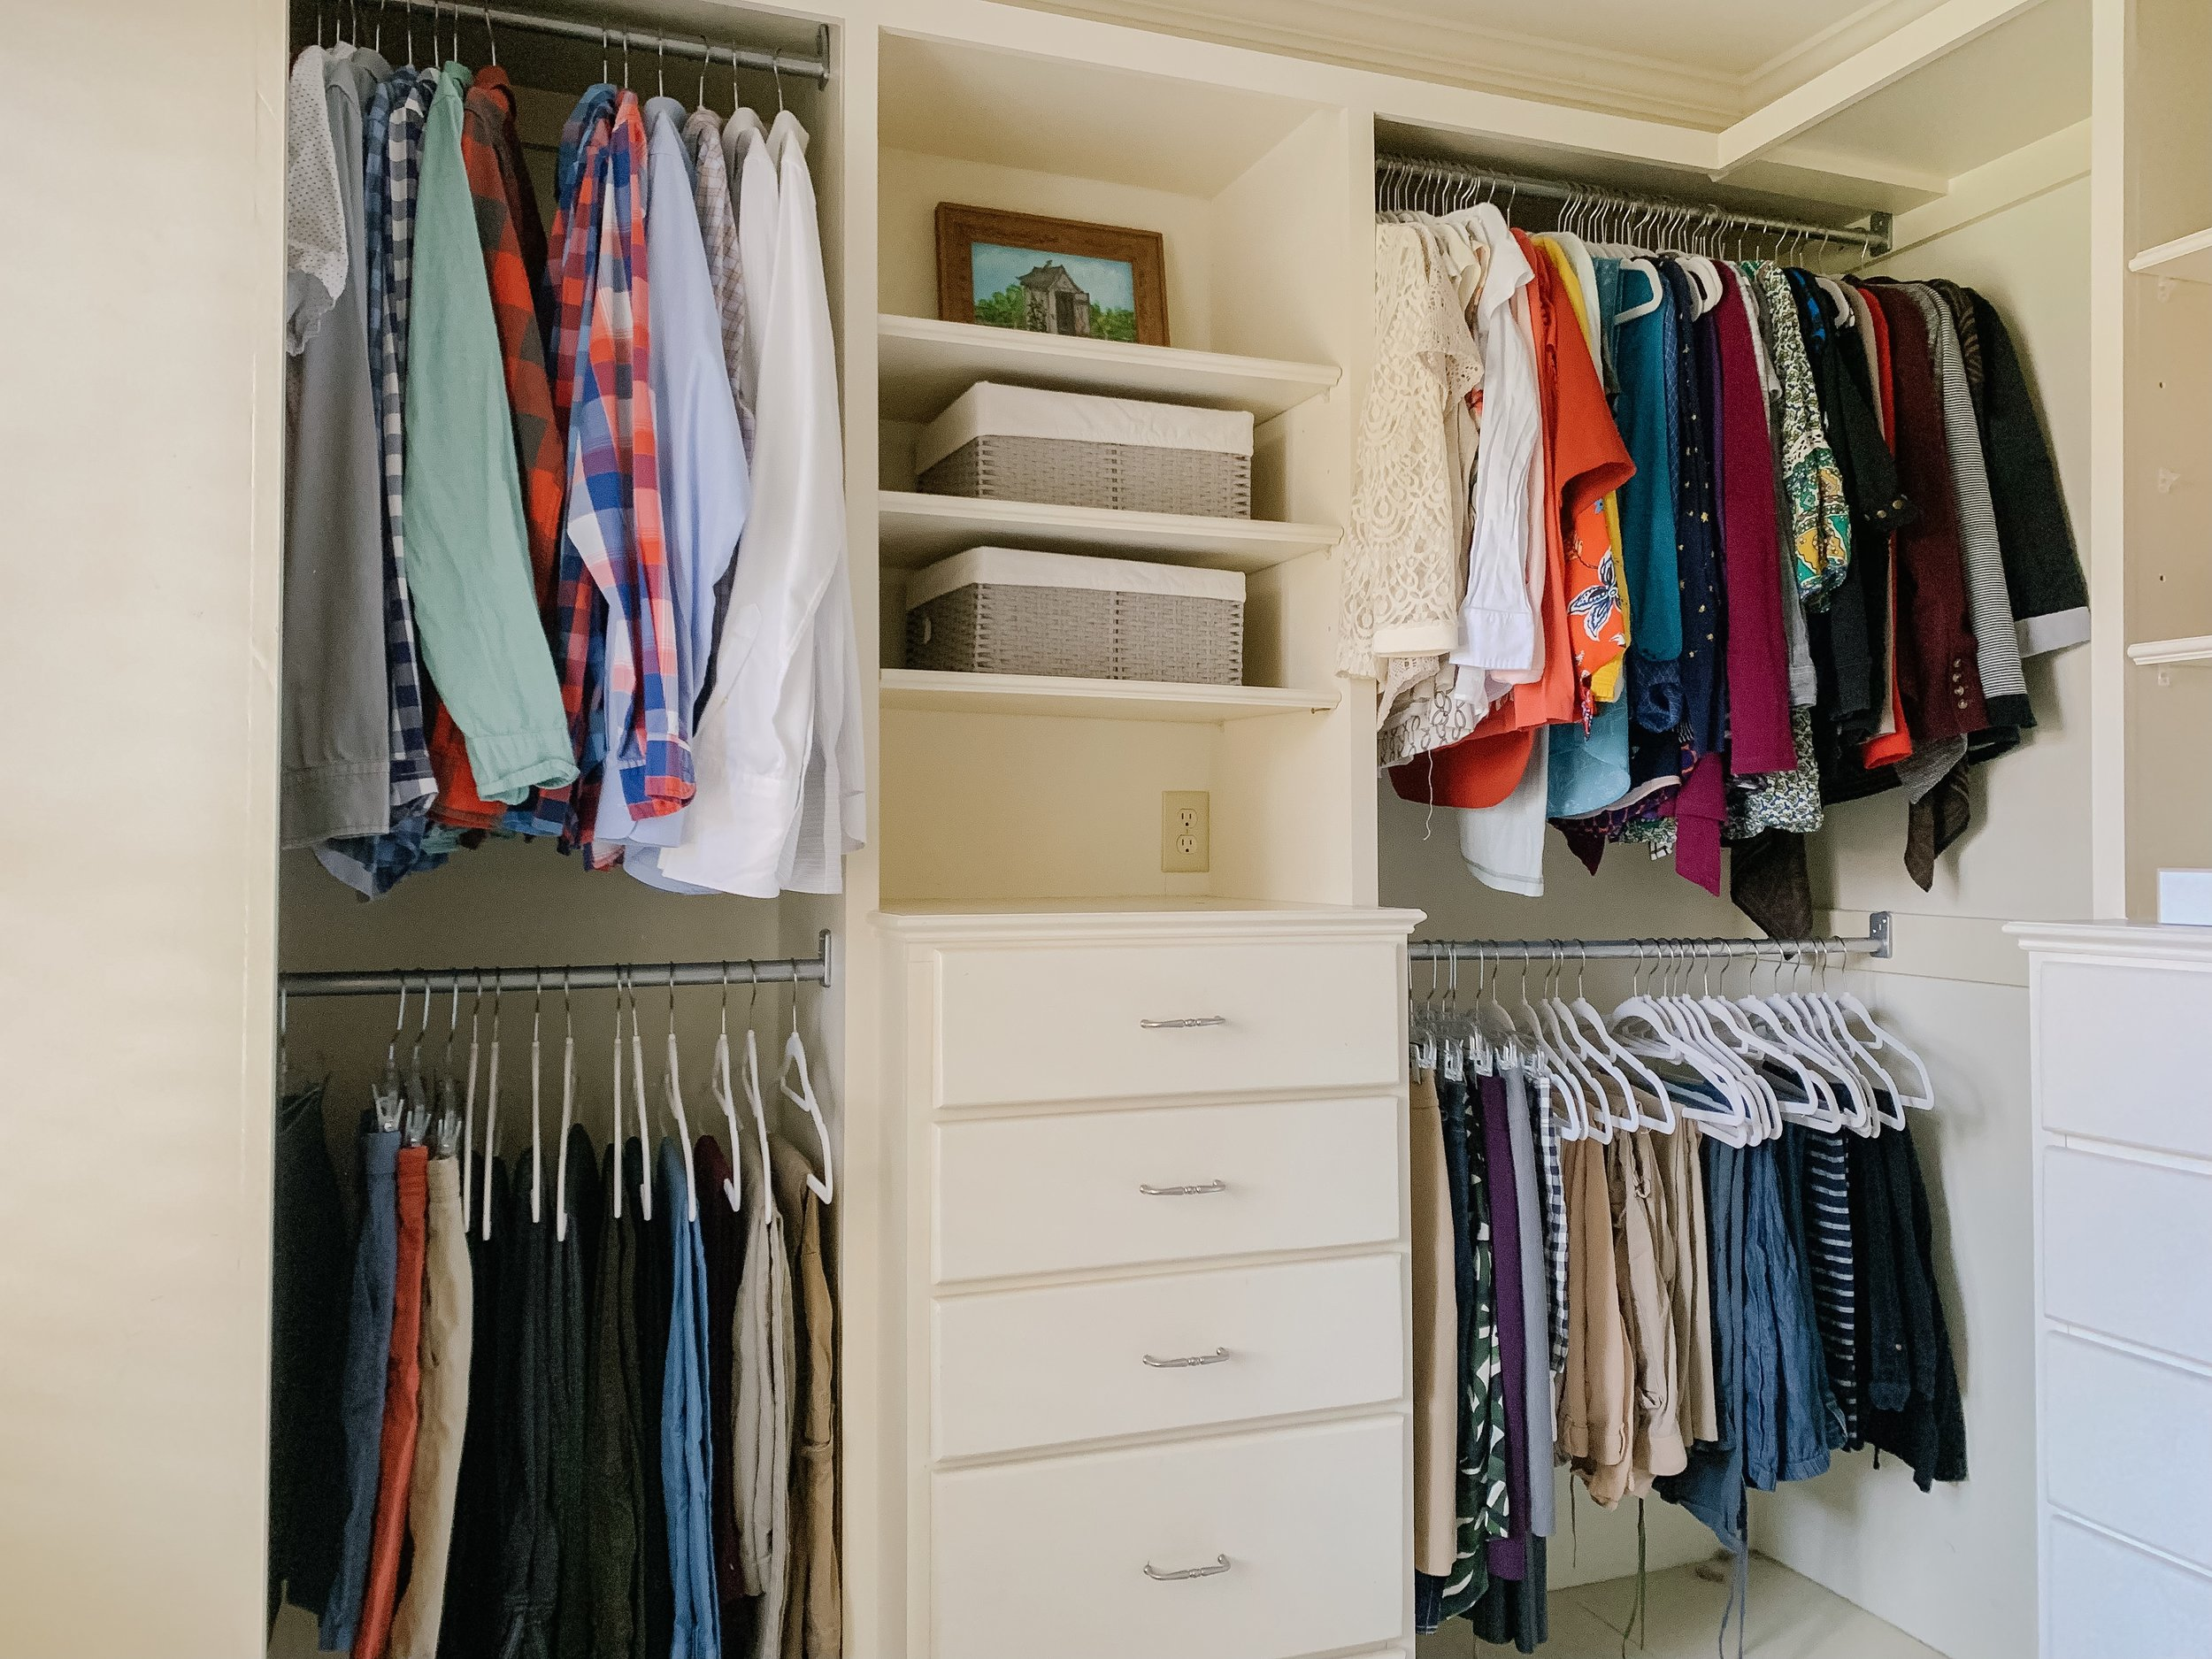 A client's closet we staged before the house was listed.